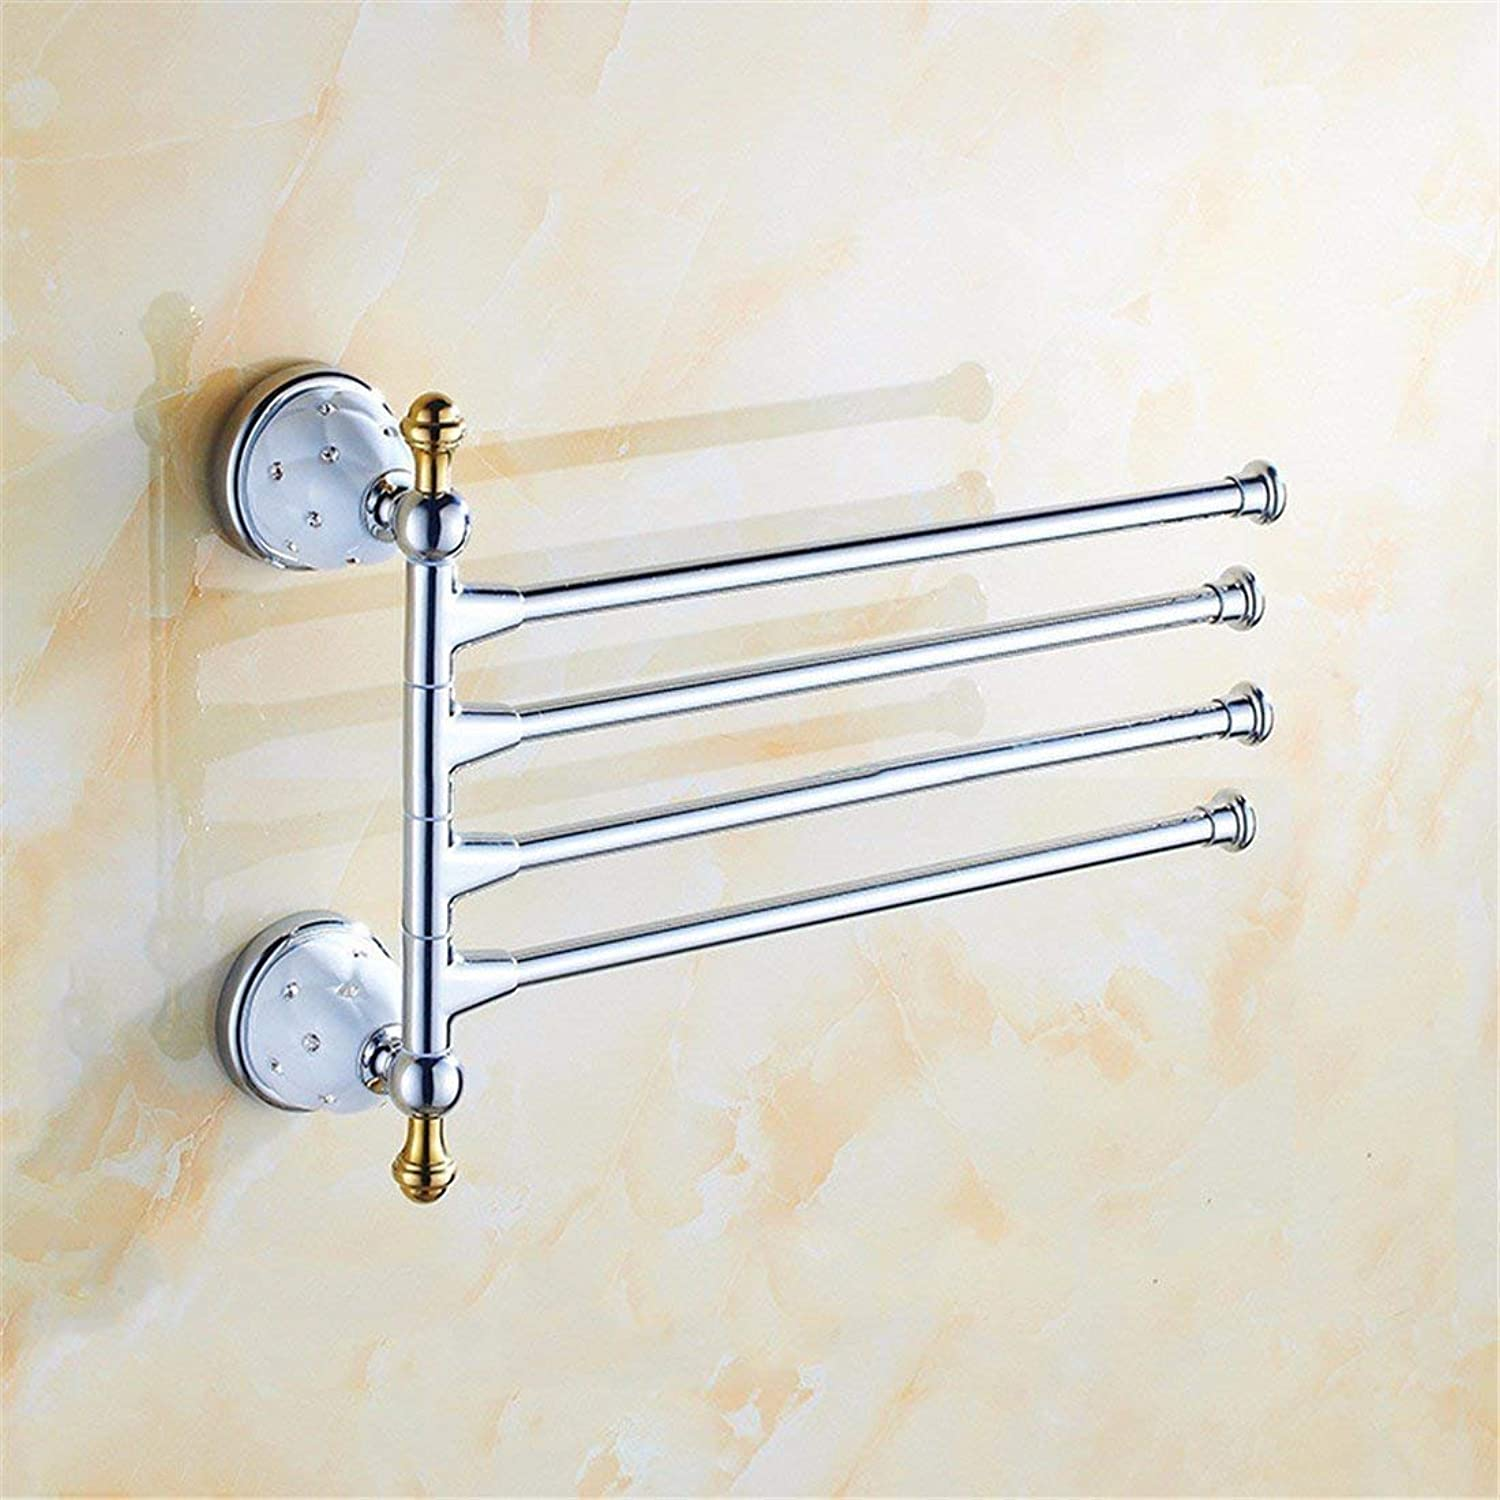 Accessories of European-Style Bathroom Former of Christmas in Diamond Necklace Silver Chrome Stainless Steel Set Bathroom Door Soap Toothbrush, 4 Bar